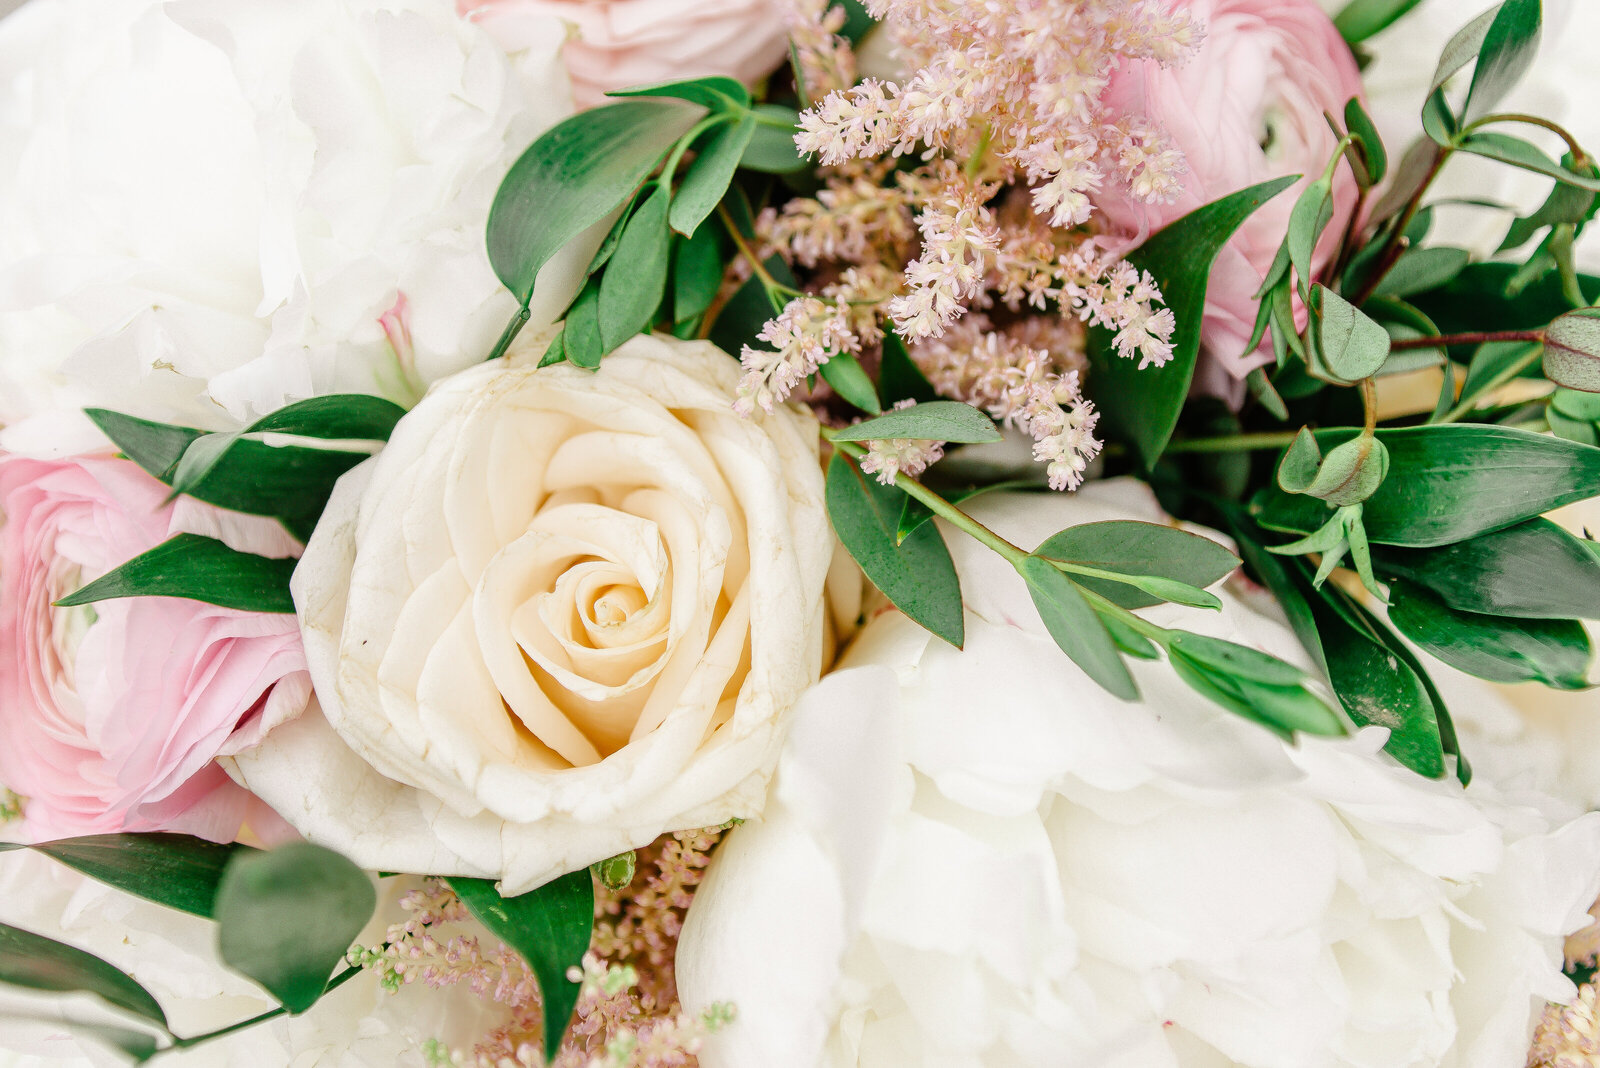 A detail photo of the white and pink blooms in a spring wedding bouquet.